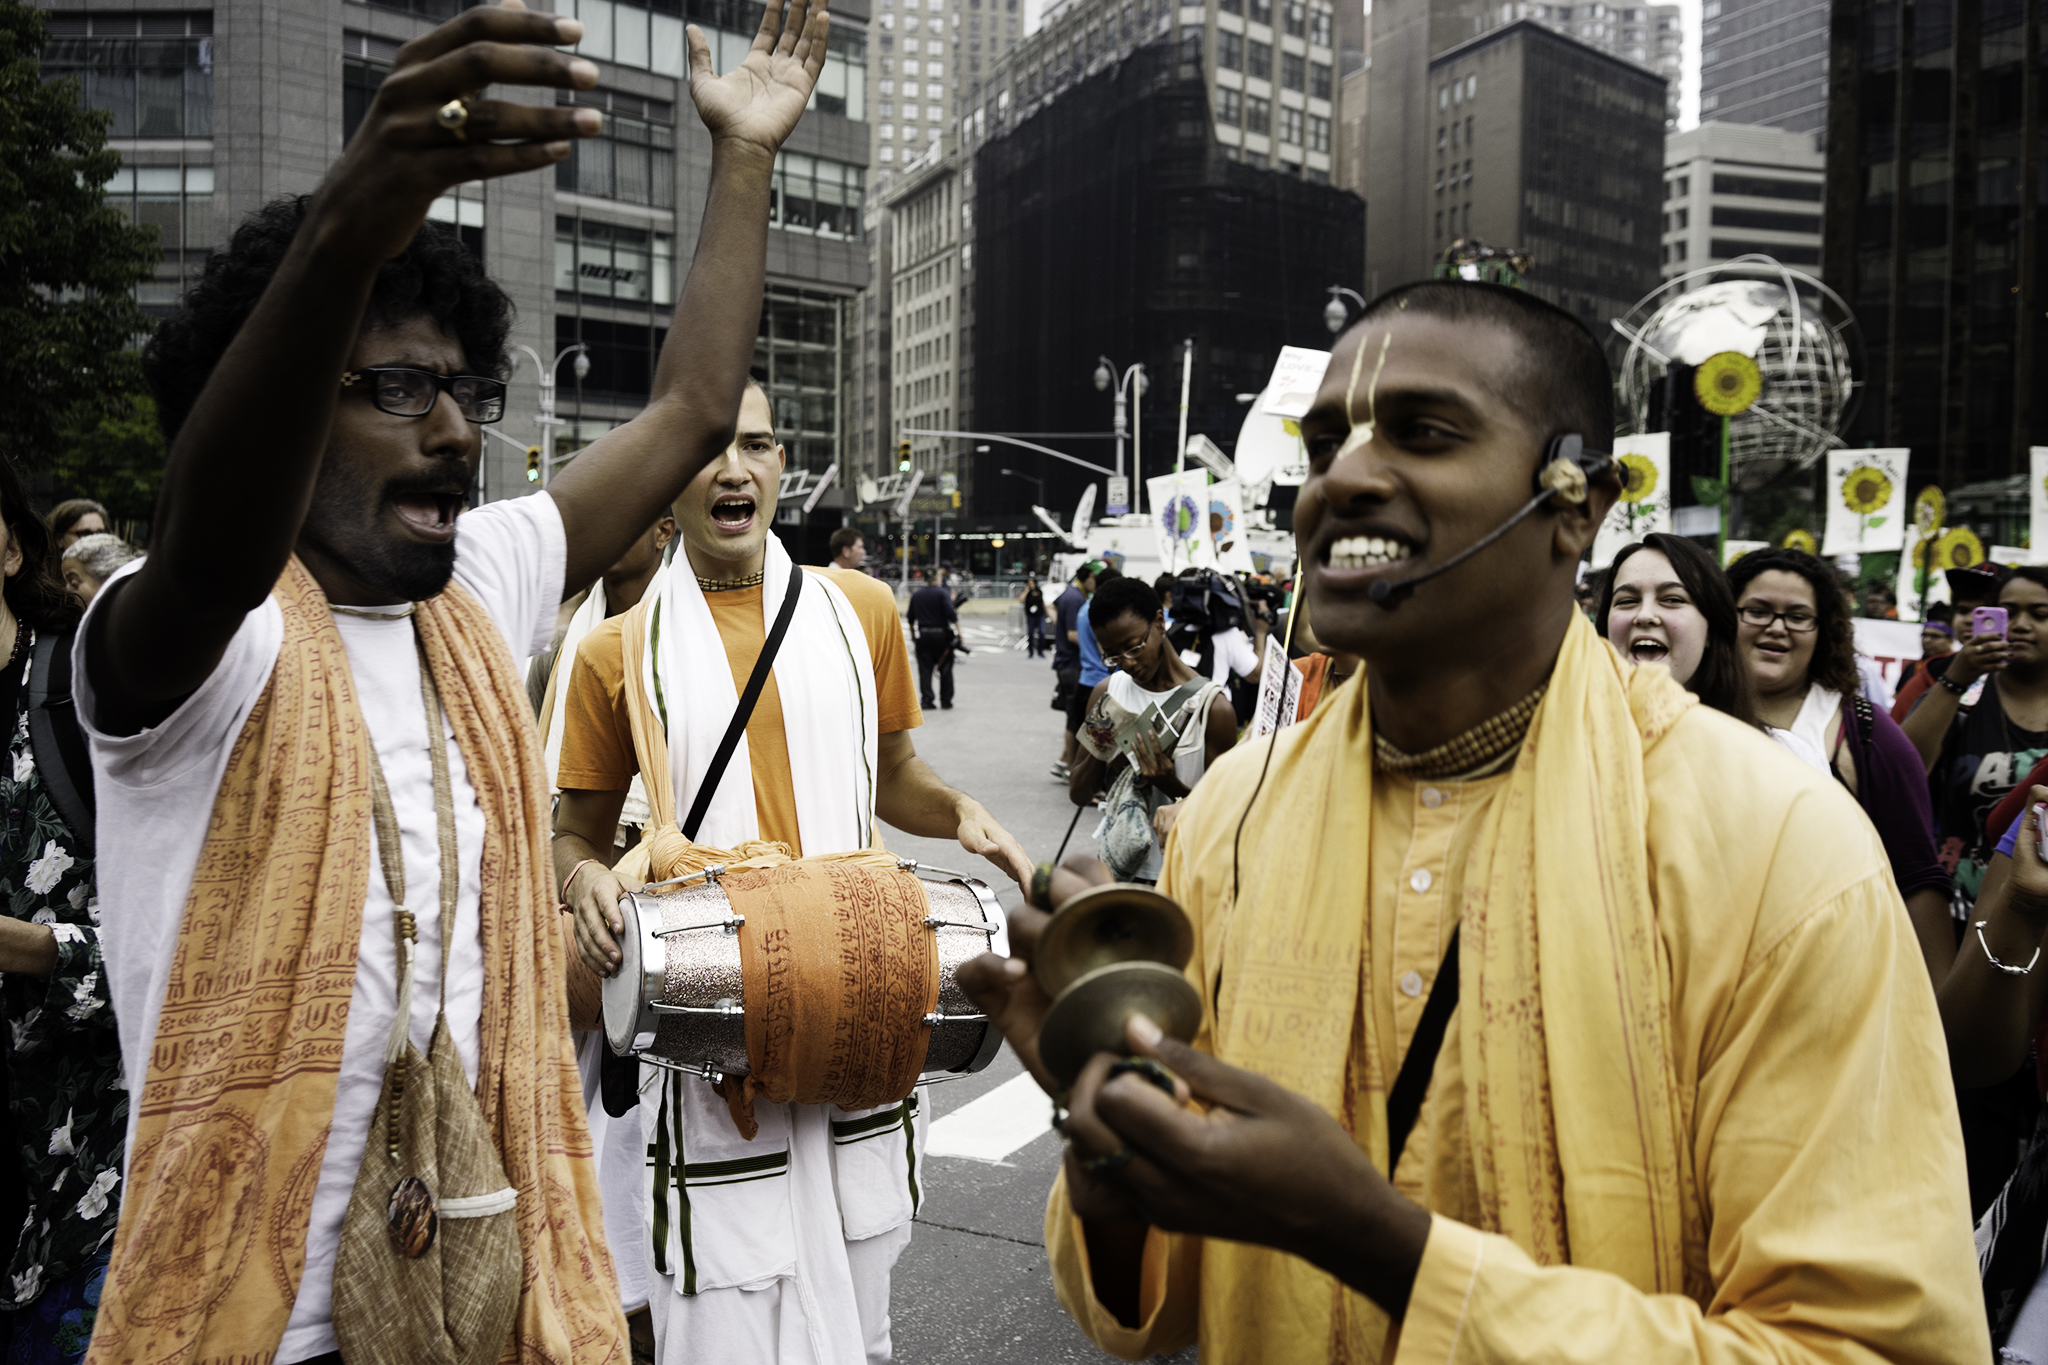 The Hare Krishnas chanting and having the most fun of anyone.